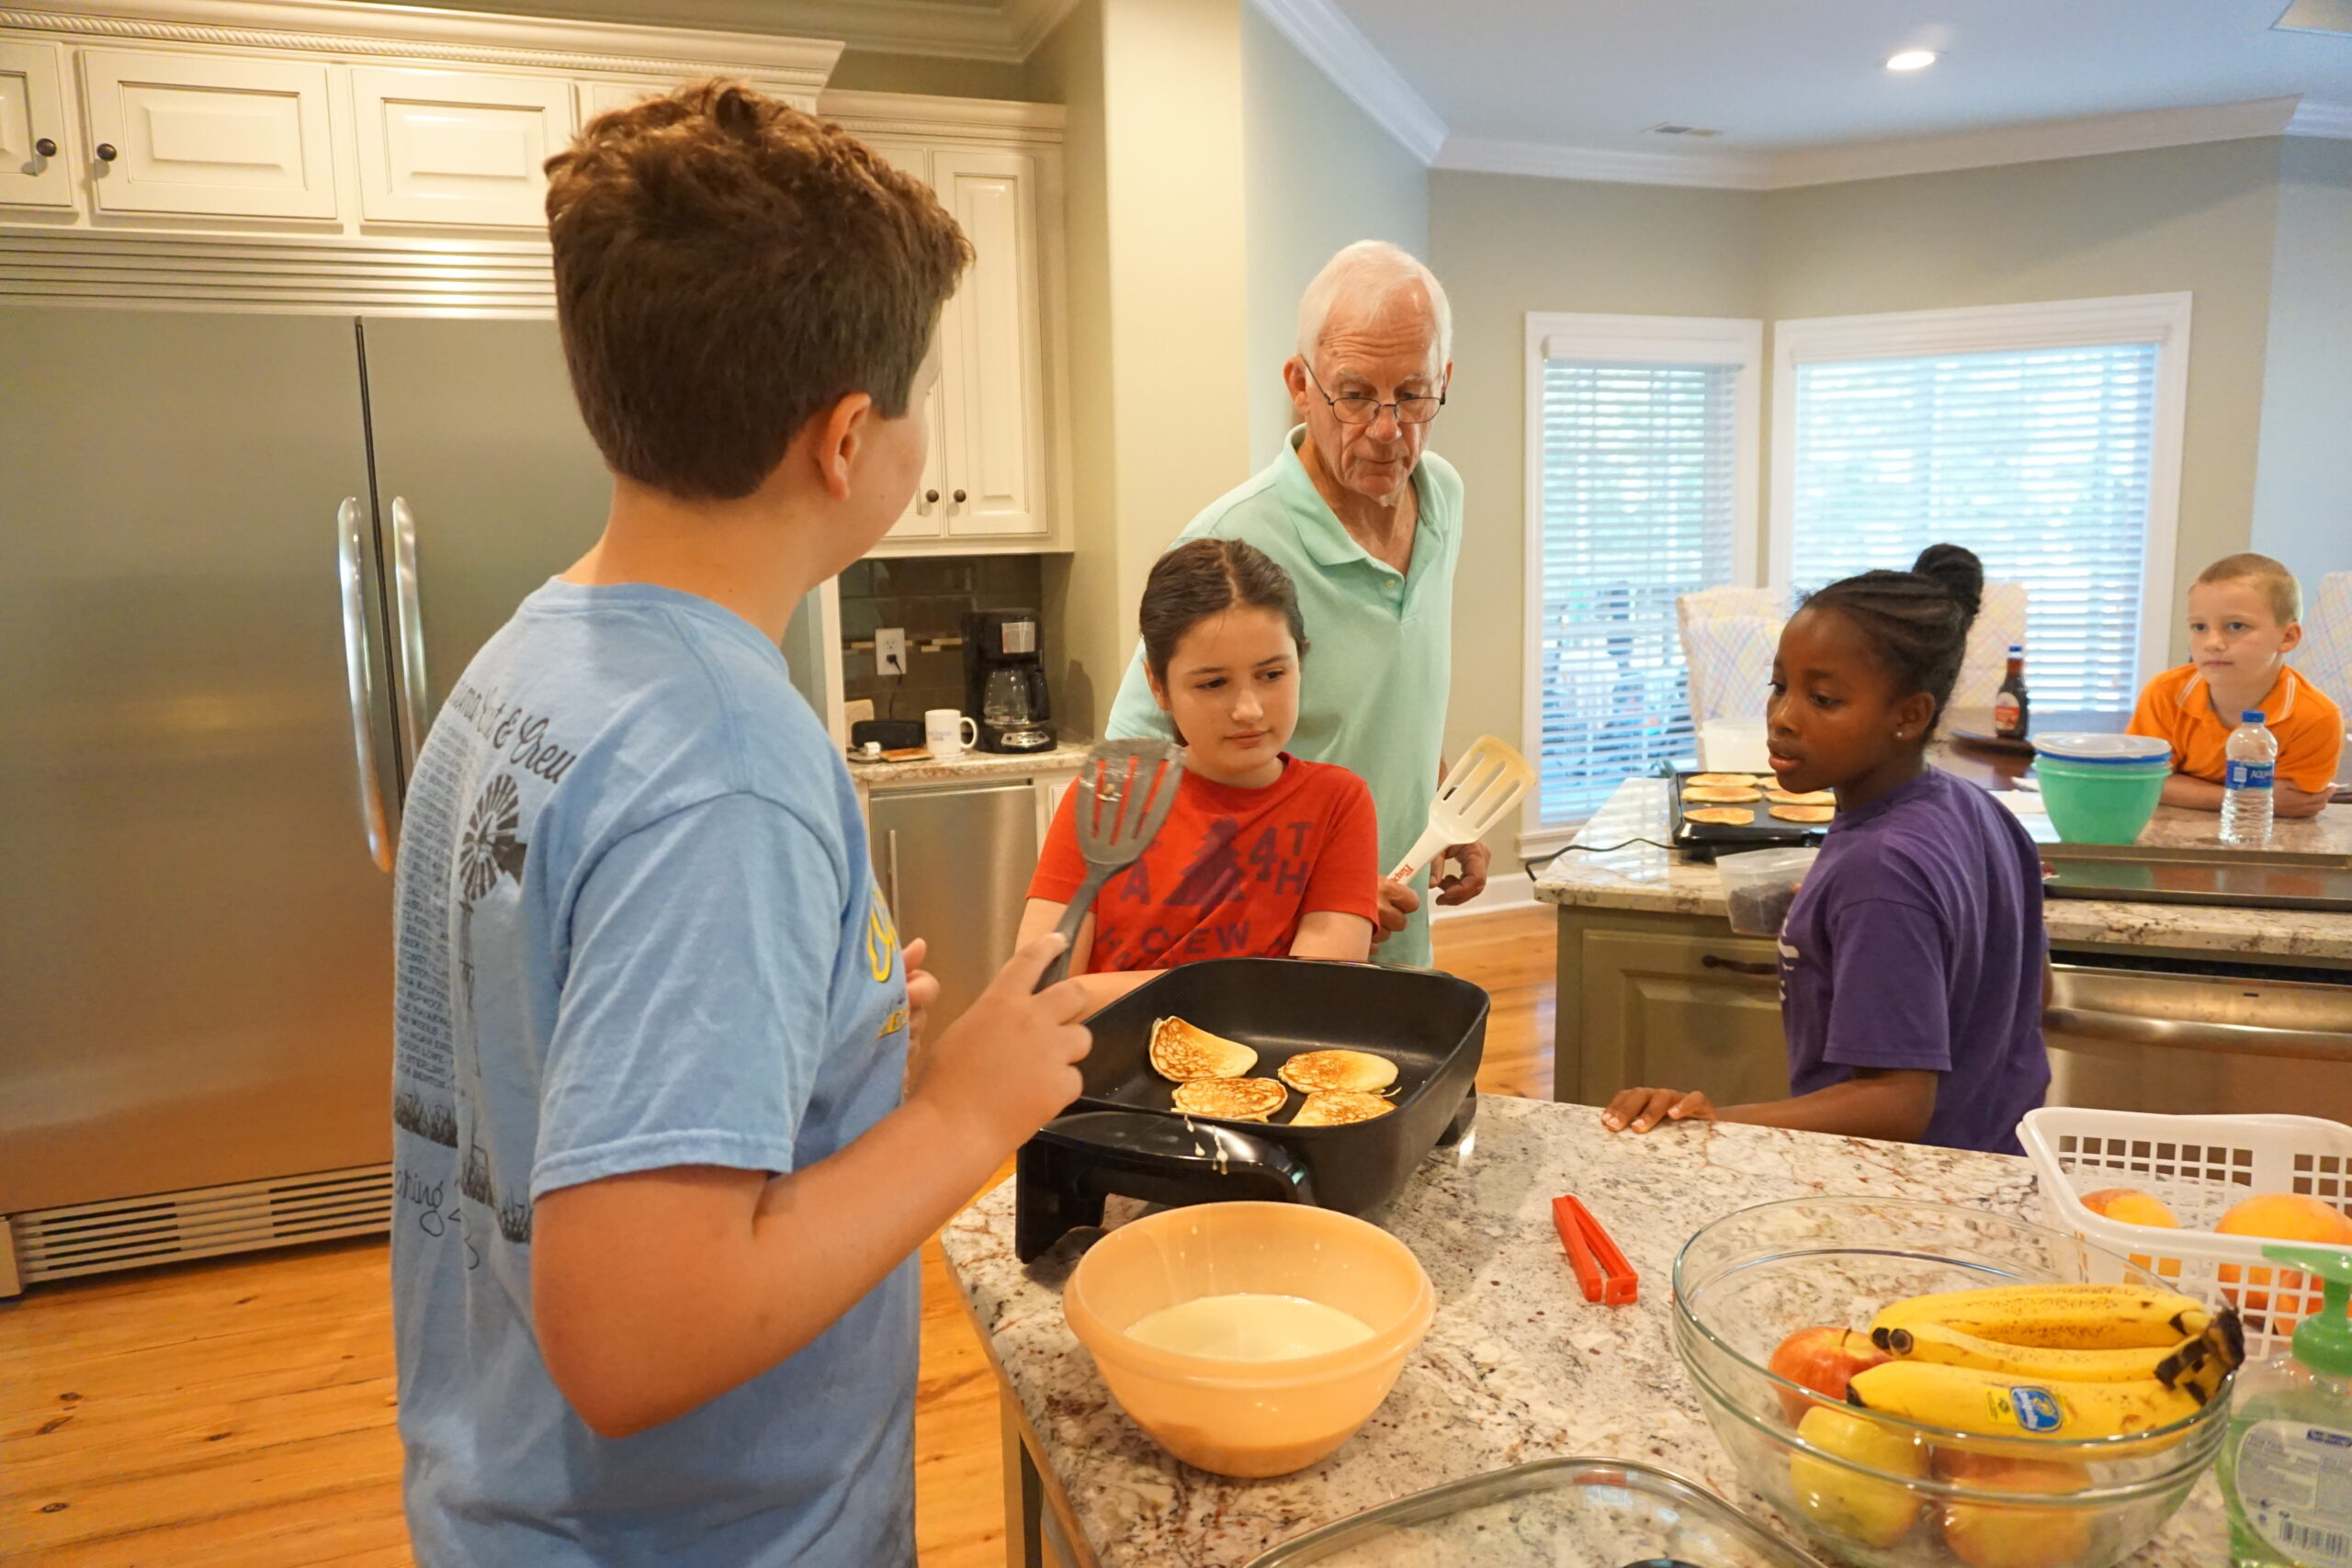 Cousin camp ideas - Cousins helping Granddaddy fix pancakes for breakfast